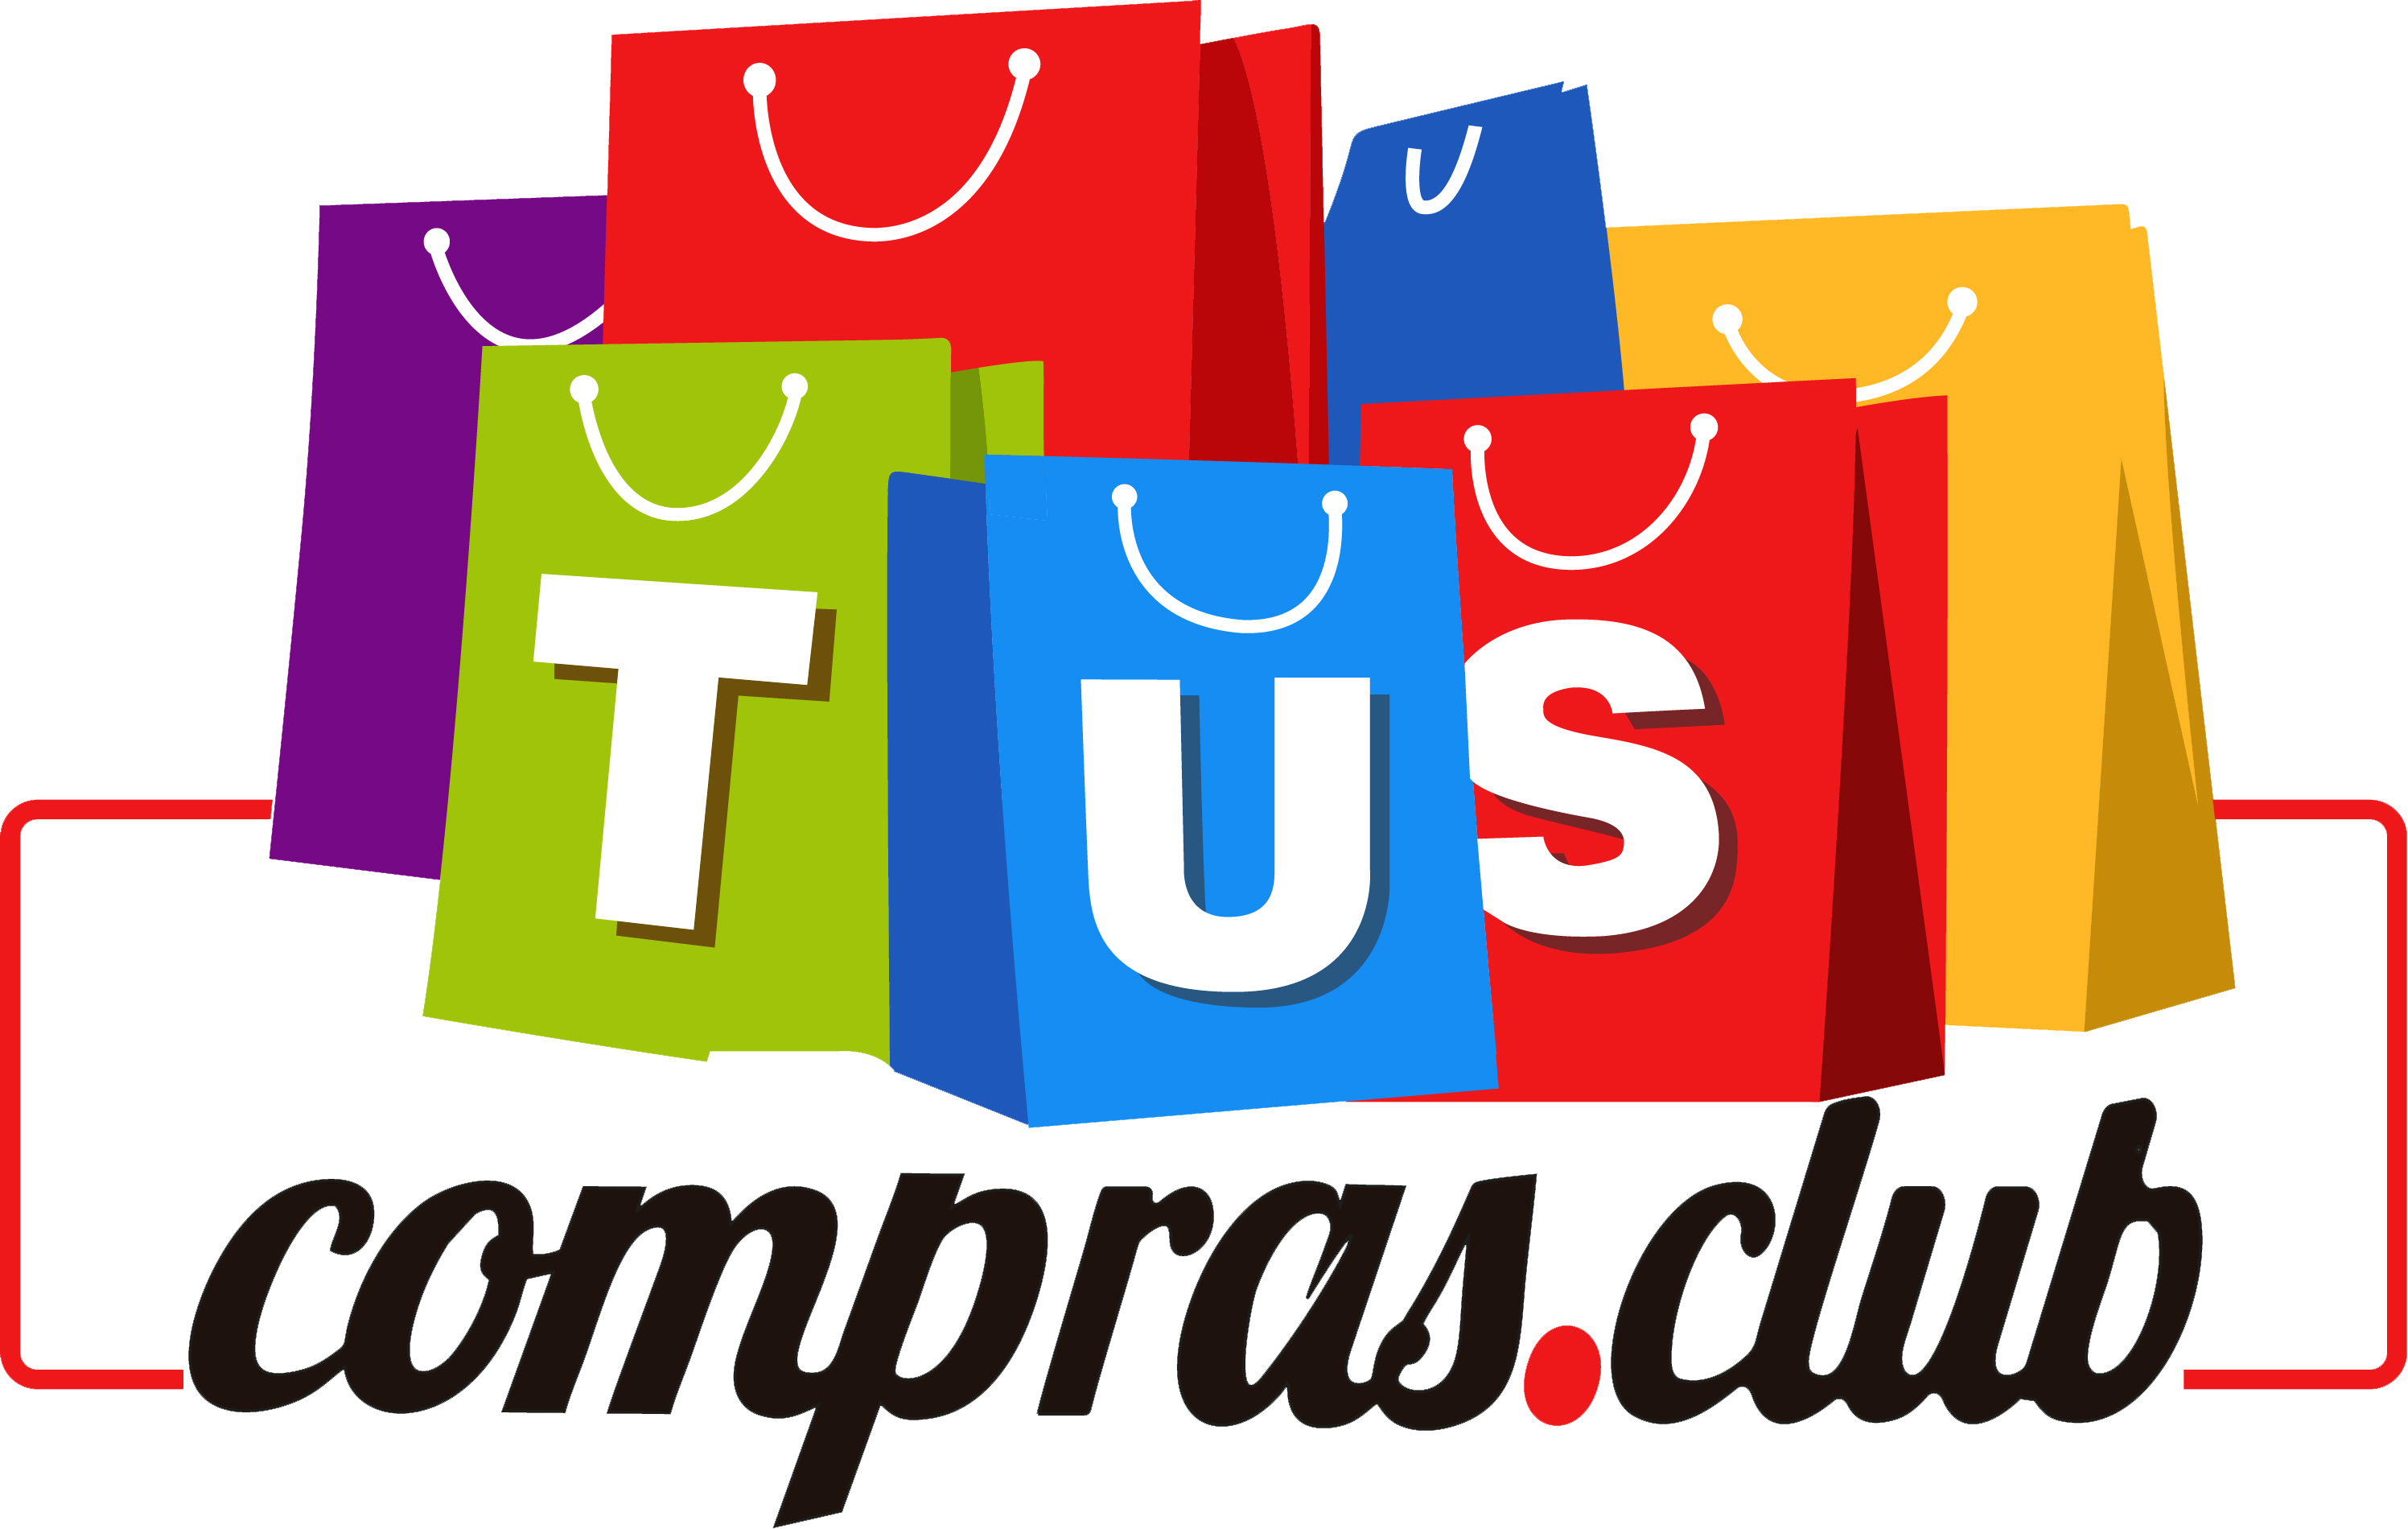 TusCompras.Club